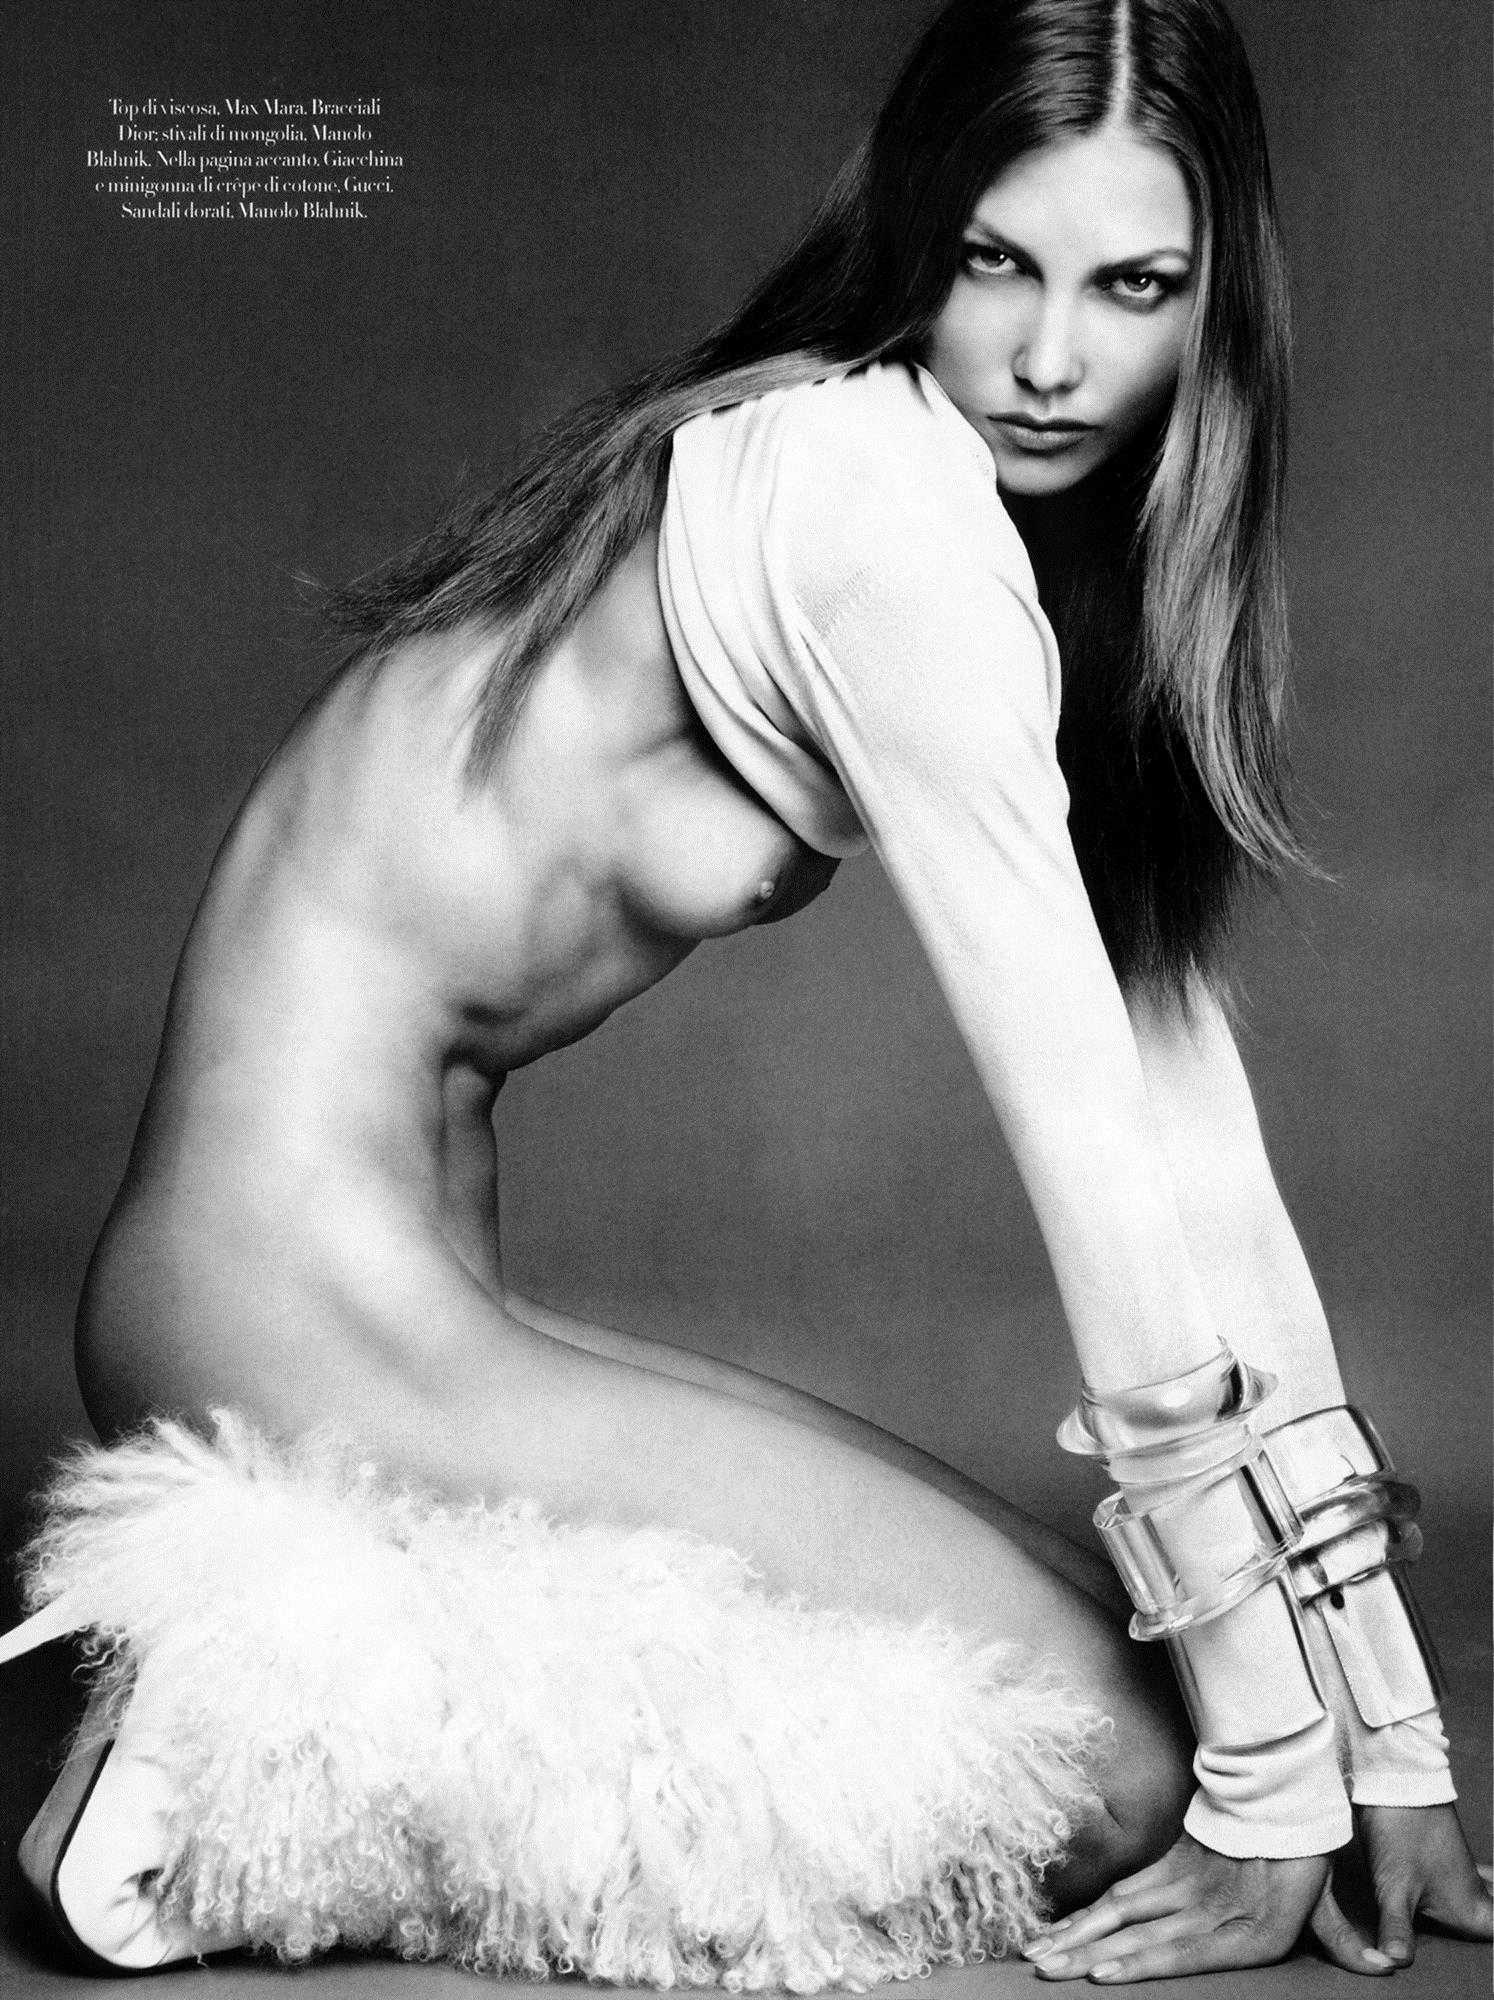 Nude Pictures Of Karlie Kloss Which Are Incredibly Bewitching